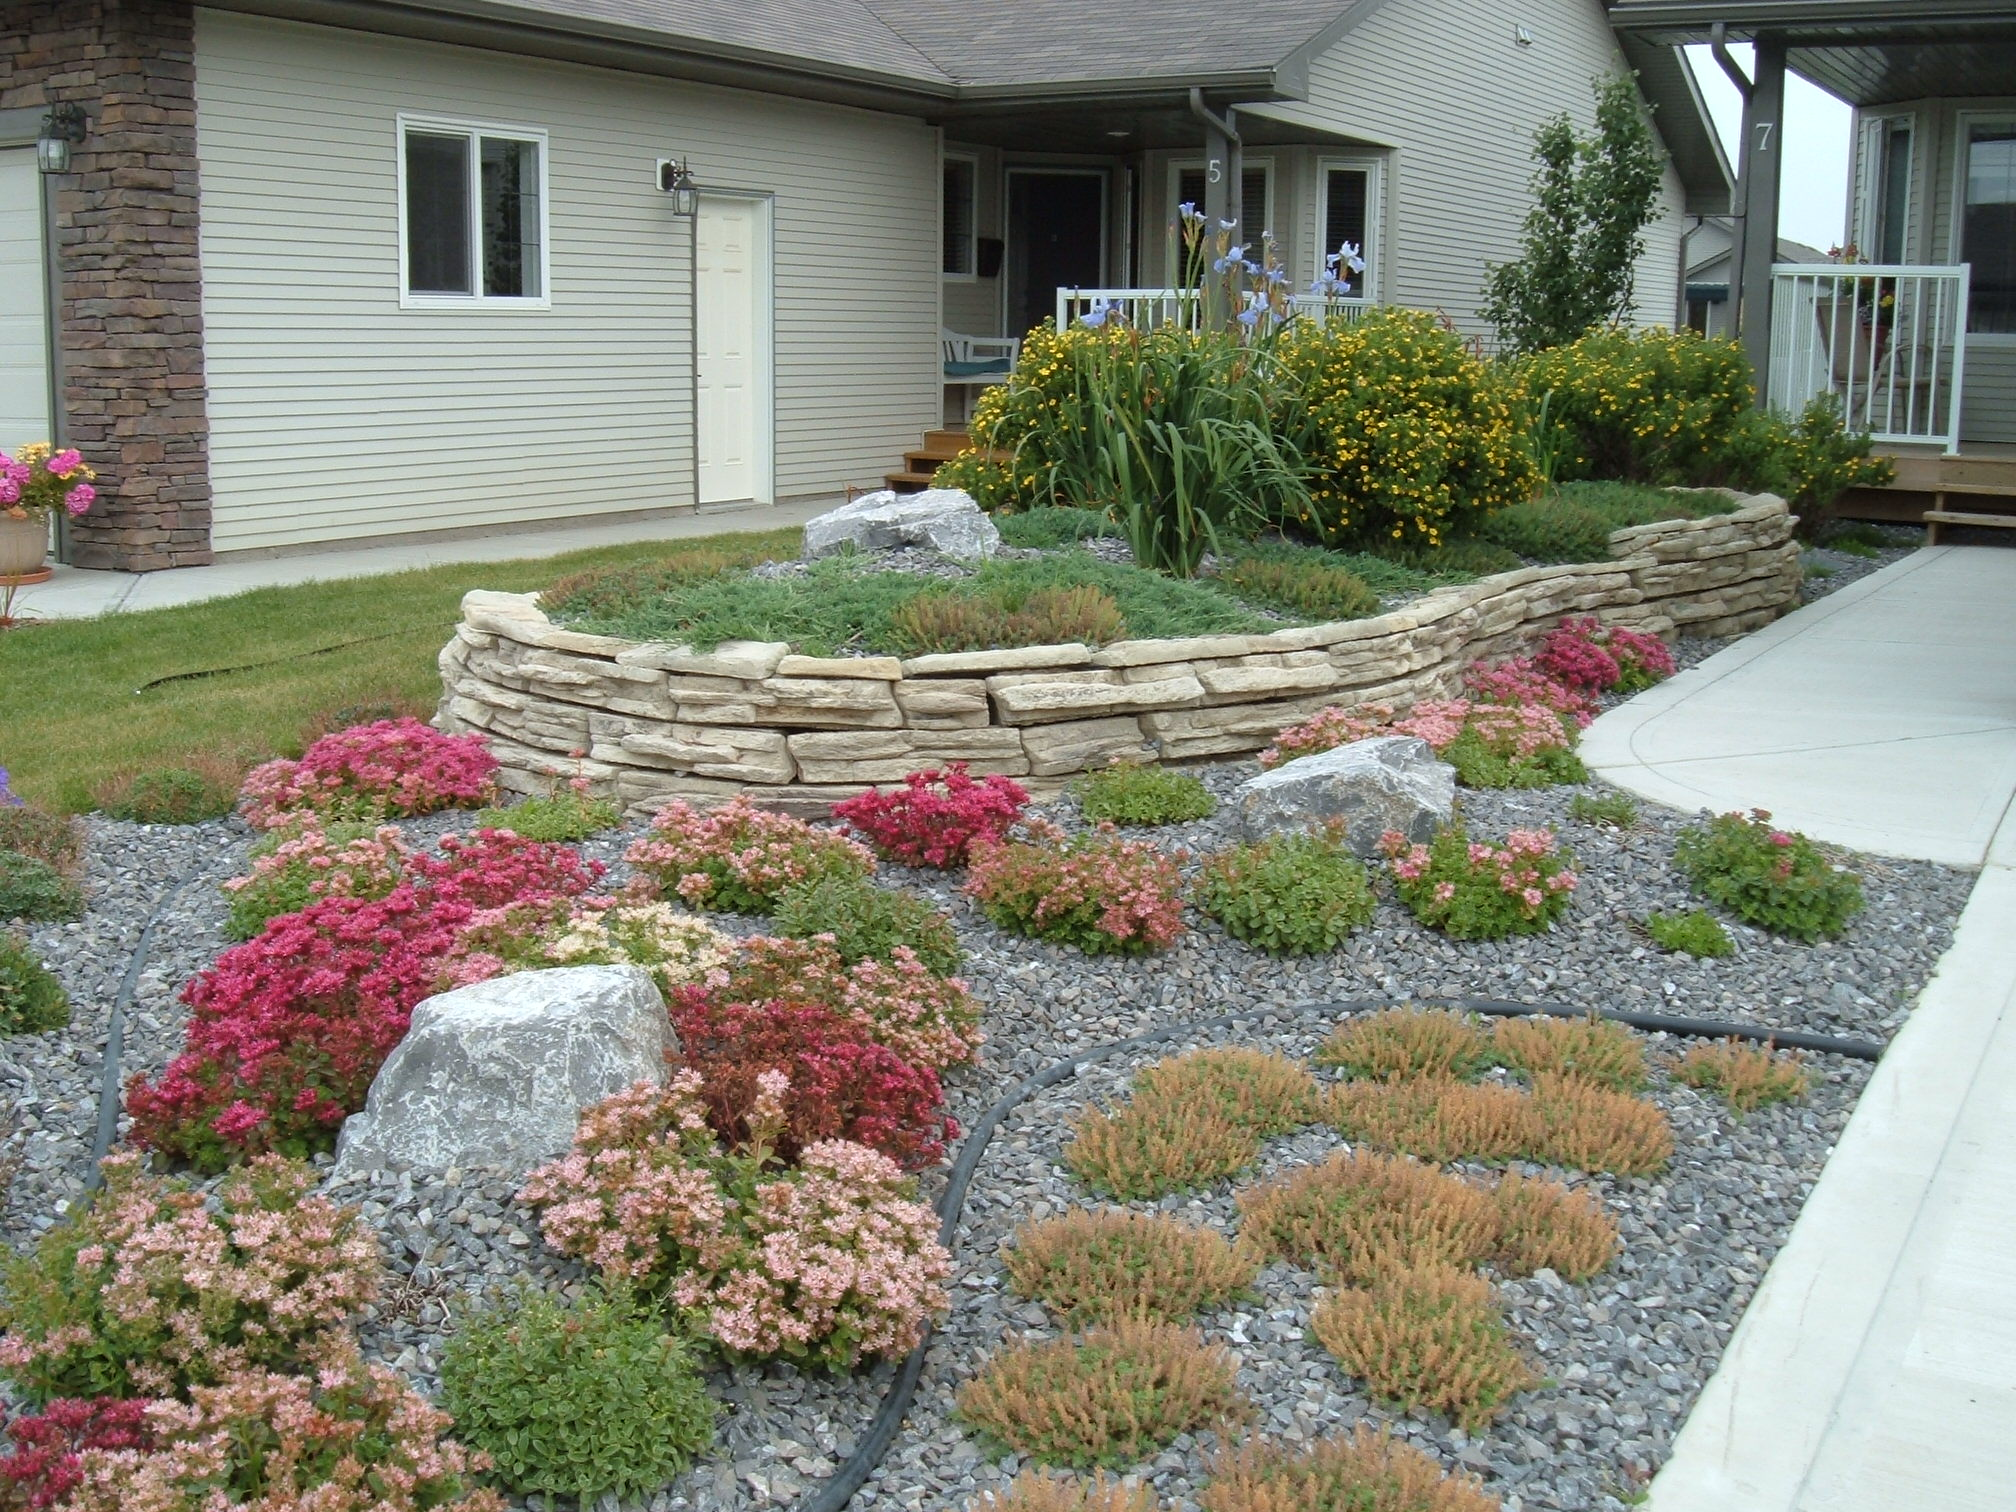 1000 images about drought resistant garden ideas on pinterest for Front lawn plant ideas